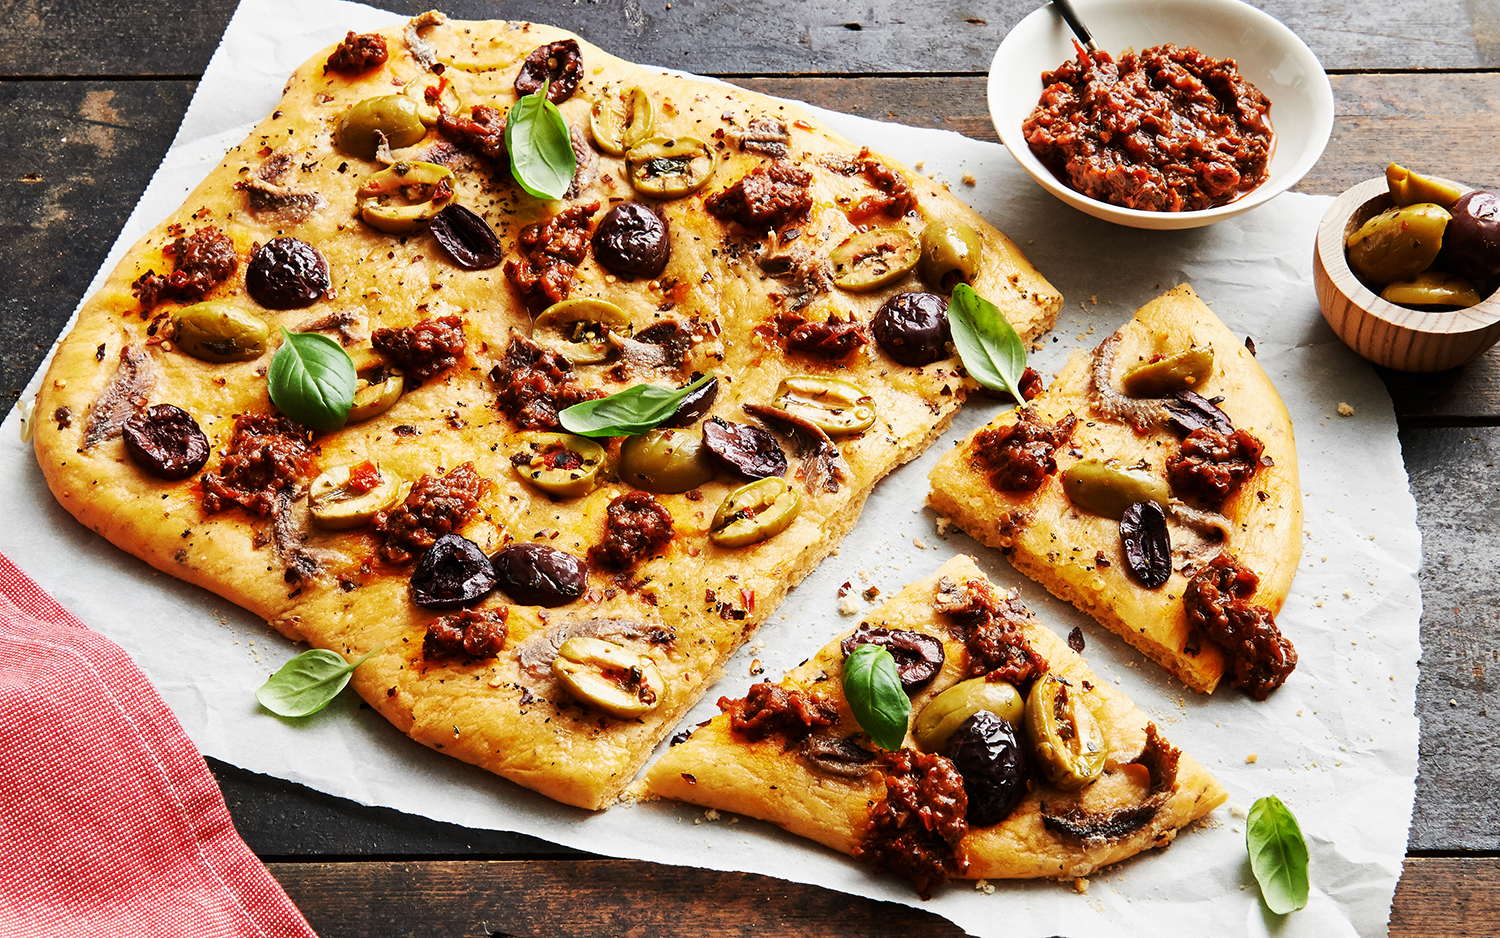 Sundried-Tomato-Pizza-with-Anchovies-and-Olives-L-2280-R1.jpg